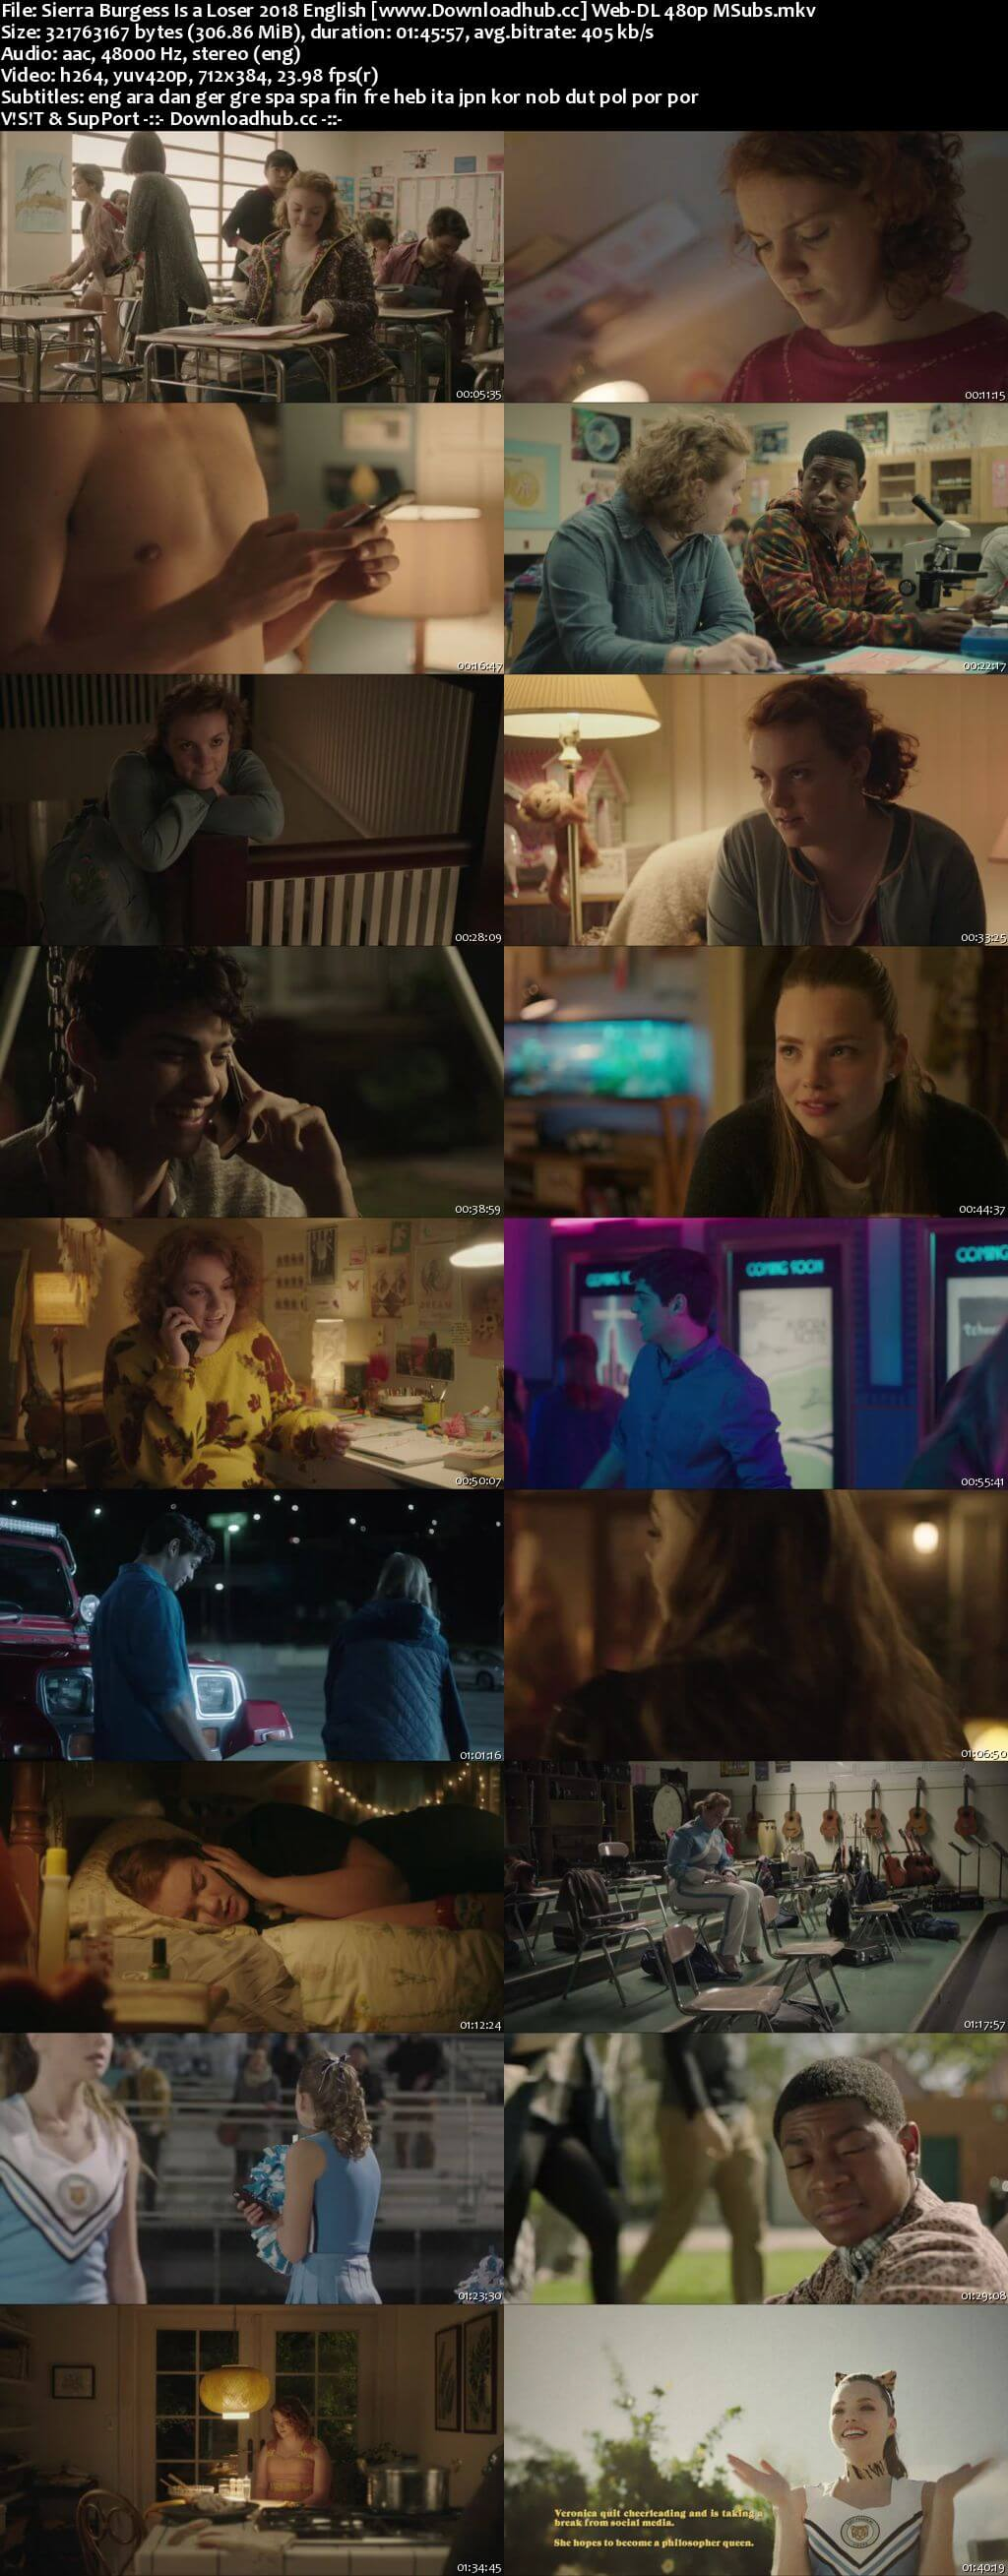 Sierra Burgess Is a Loser 2018 English 300MB Web-DL 480p MSubs